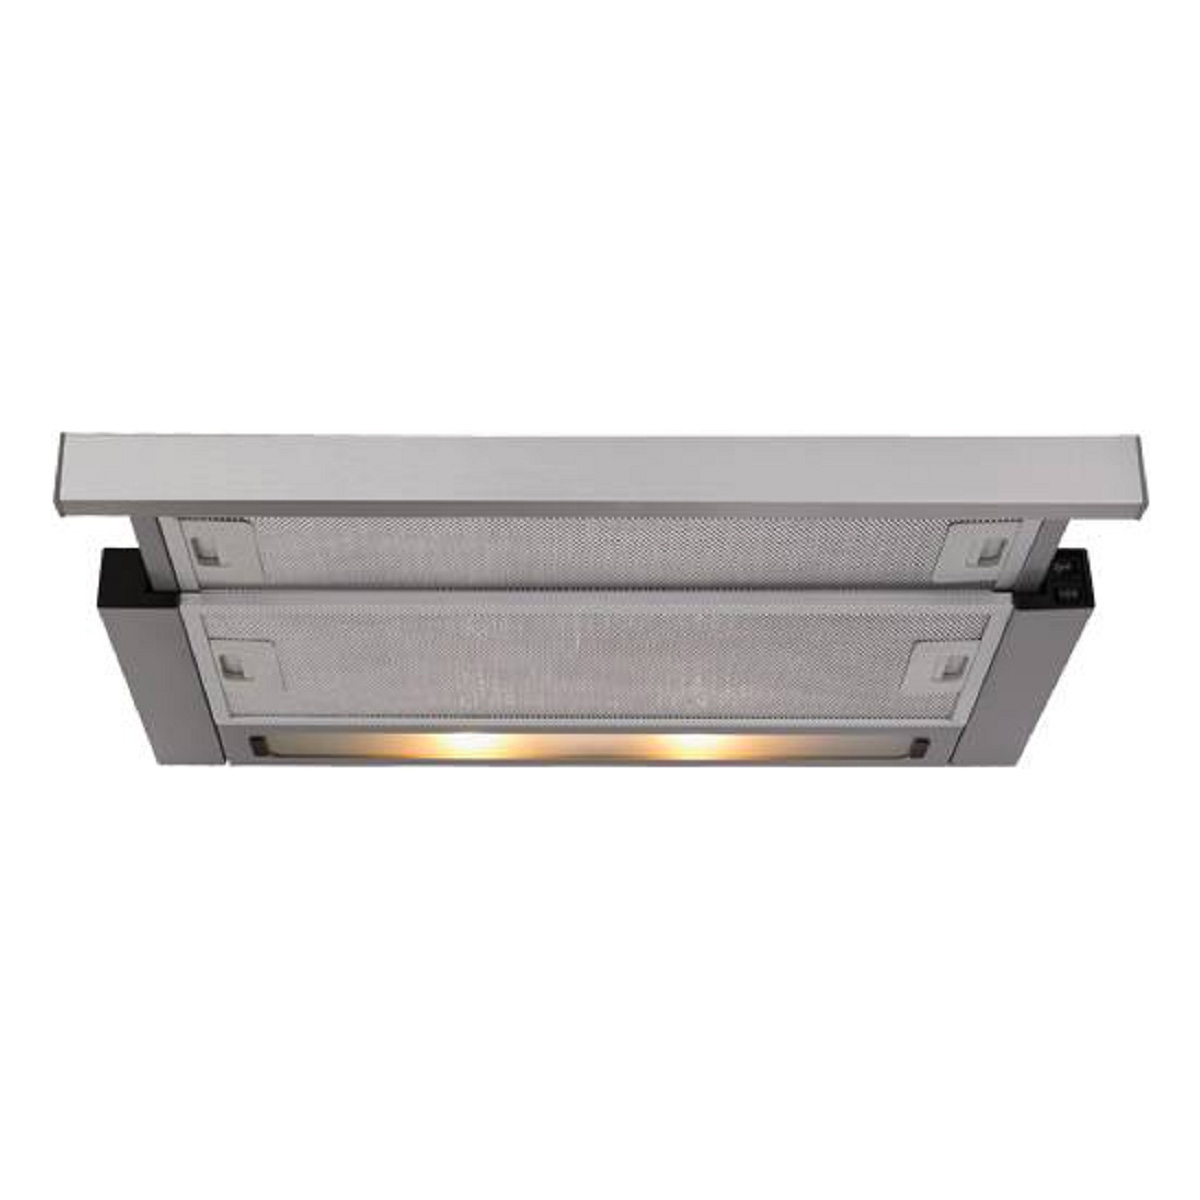 Technika Slide Out Rangehood SL10190I